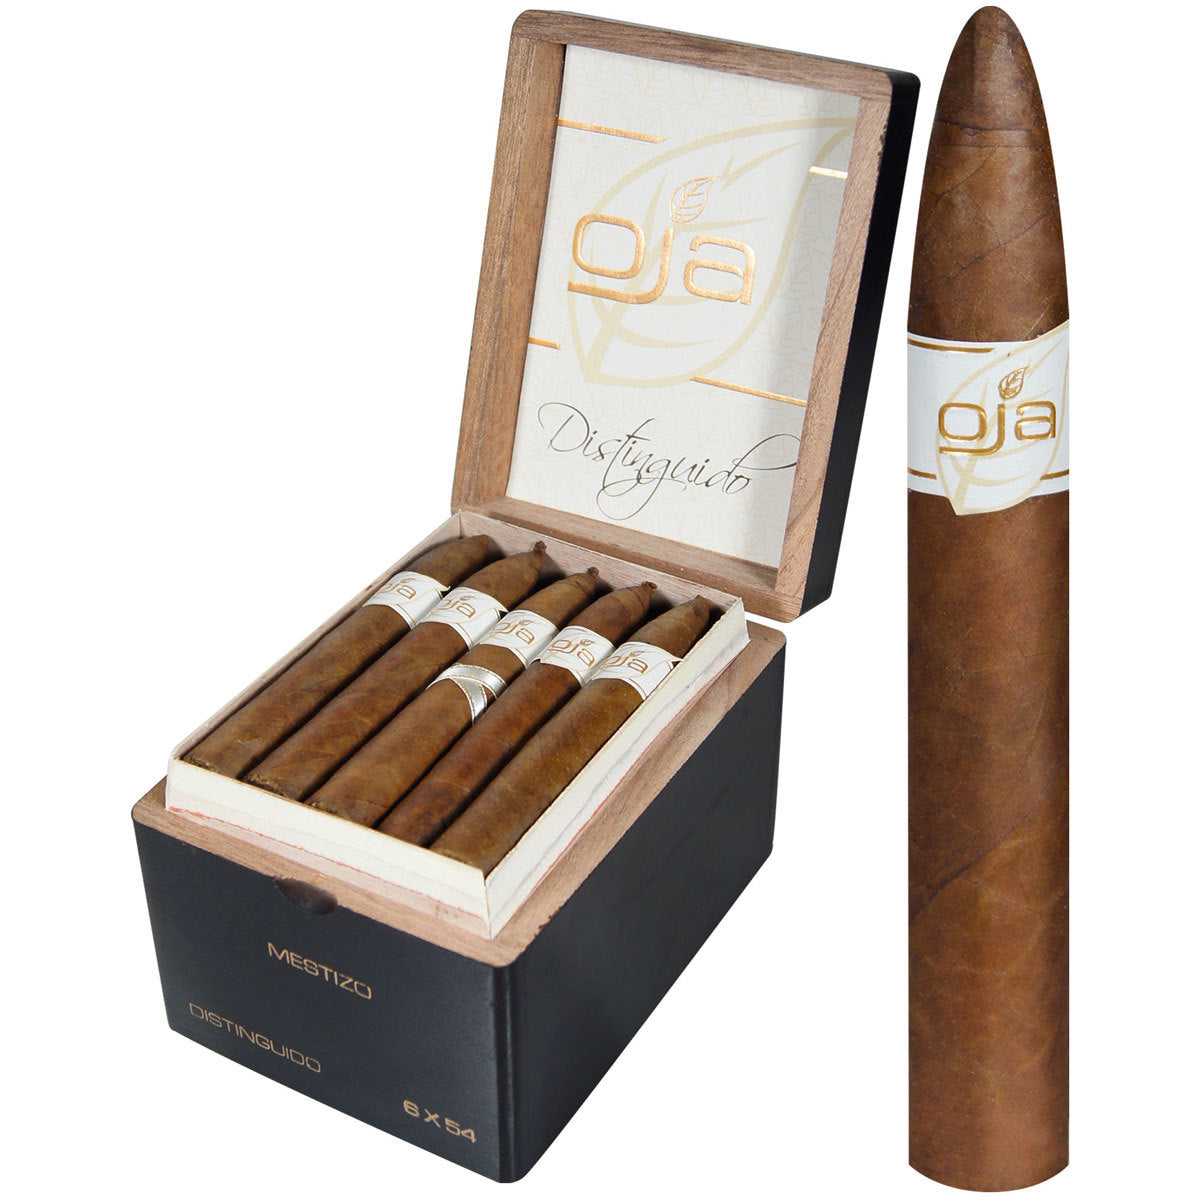 Oja Mestizo Cigars Box of 20 - Cigar boulevard